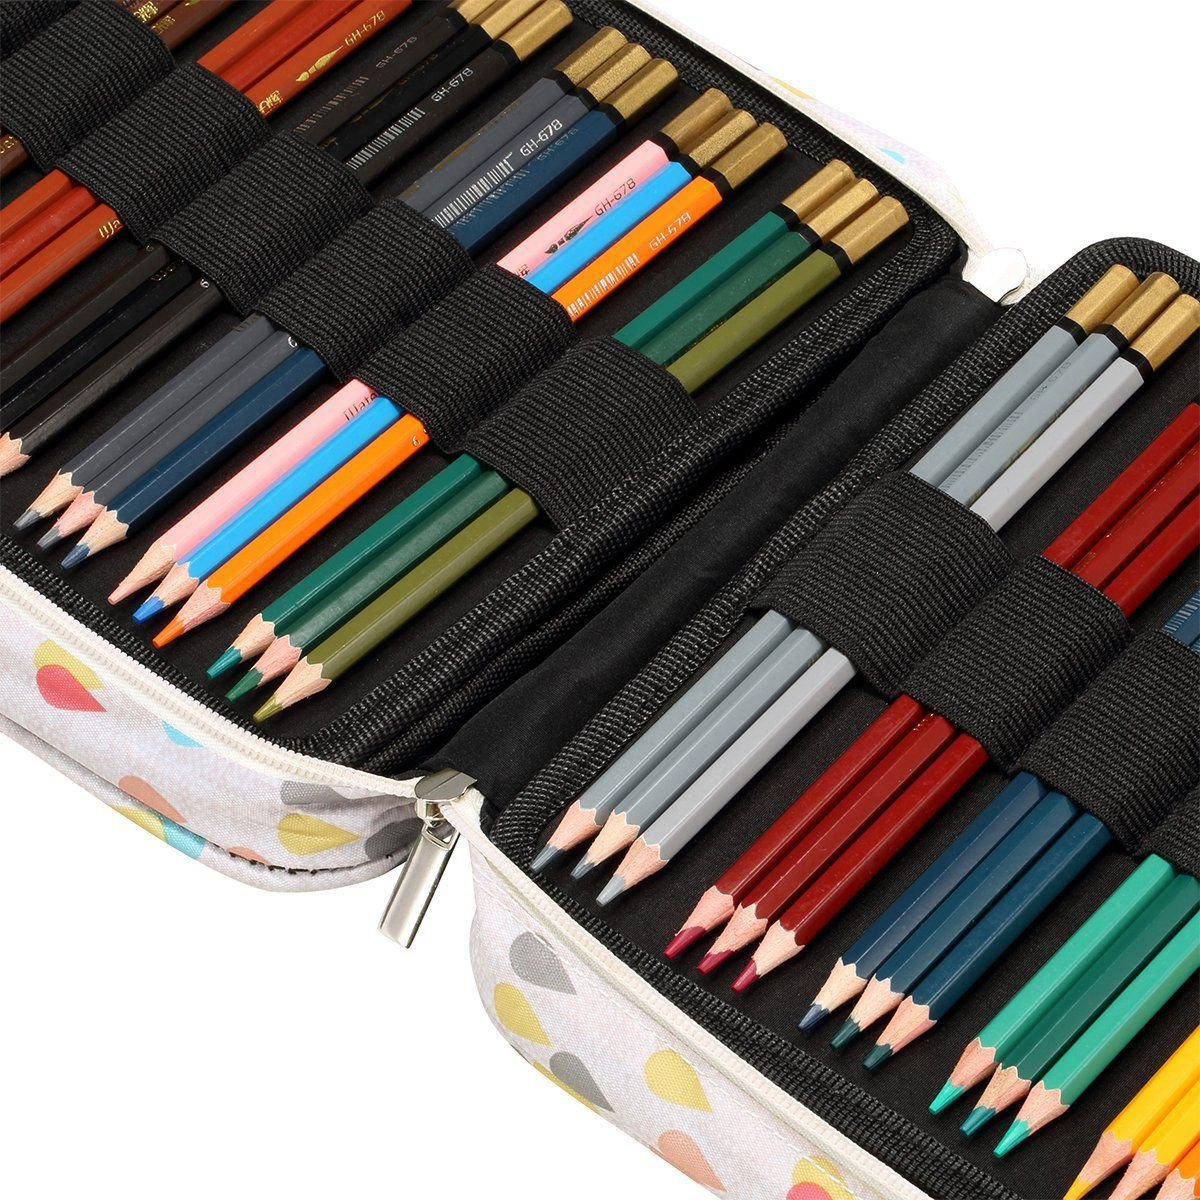 Nrpfell 150 Slots Colored Pencils Universal Pencil Bag Pen Case School Stationery PencilCase Drawing Painting Storage Pouch Pencil Box by Nrpfell (Image #6)